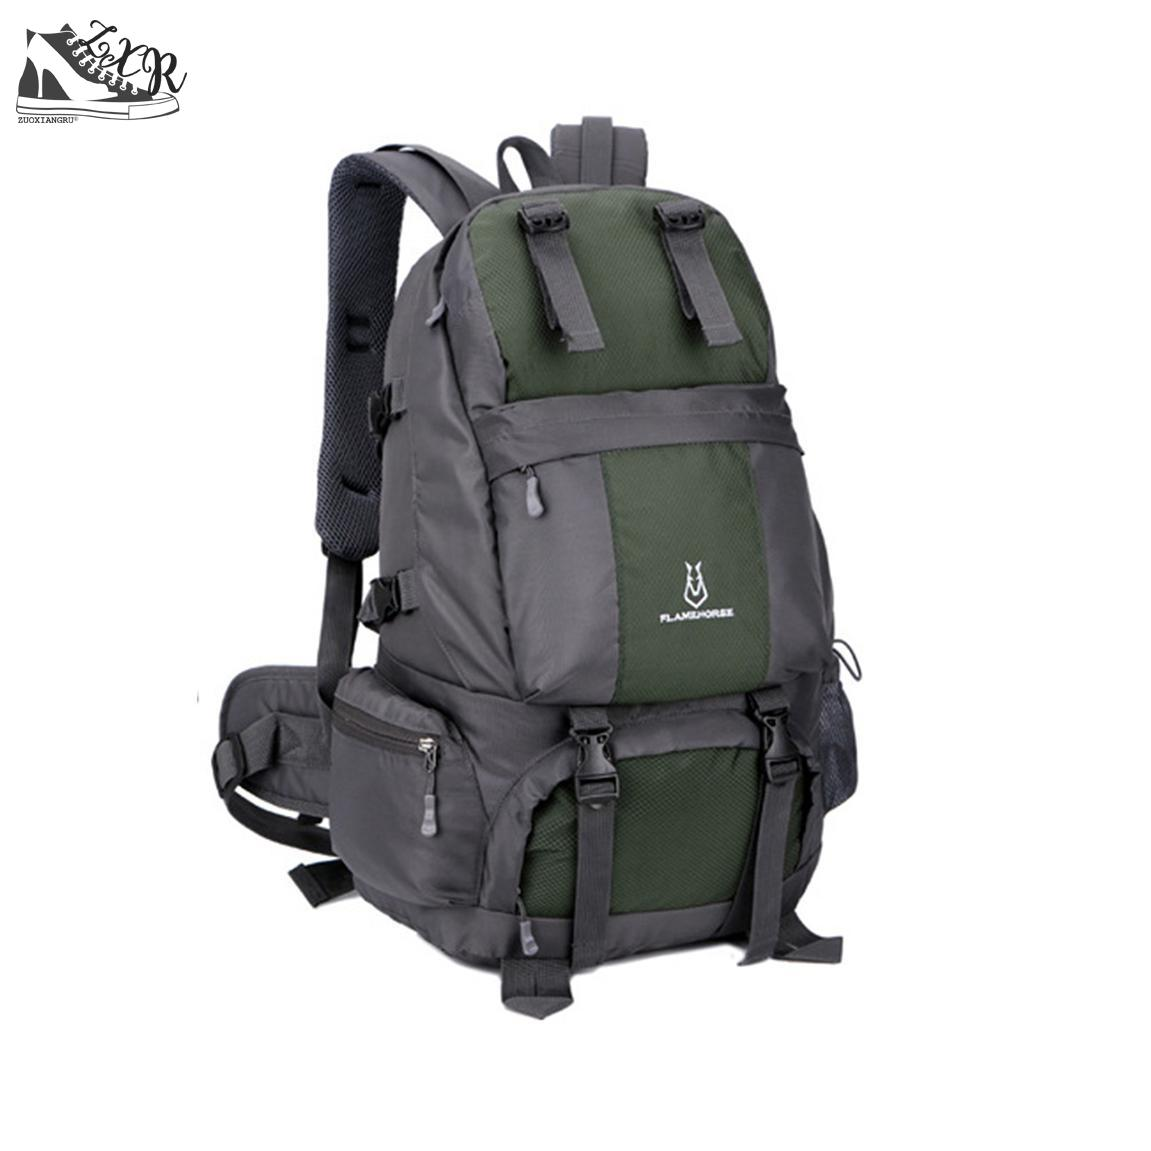 Zuoxiangru Brand New Casual Men's Large-capacity Backpack man and women Cloth Bag Ladies backBags Travel Bagpack large capacity casual man backpack